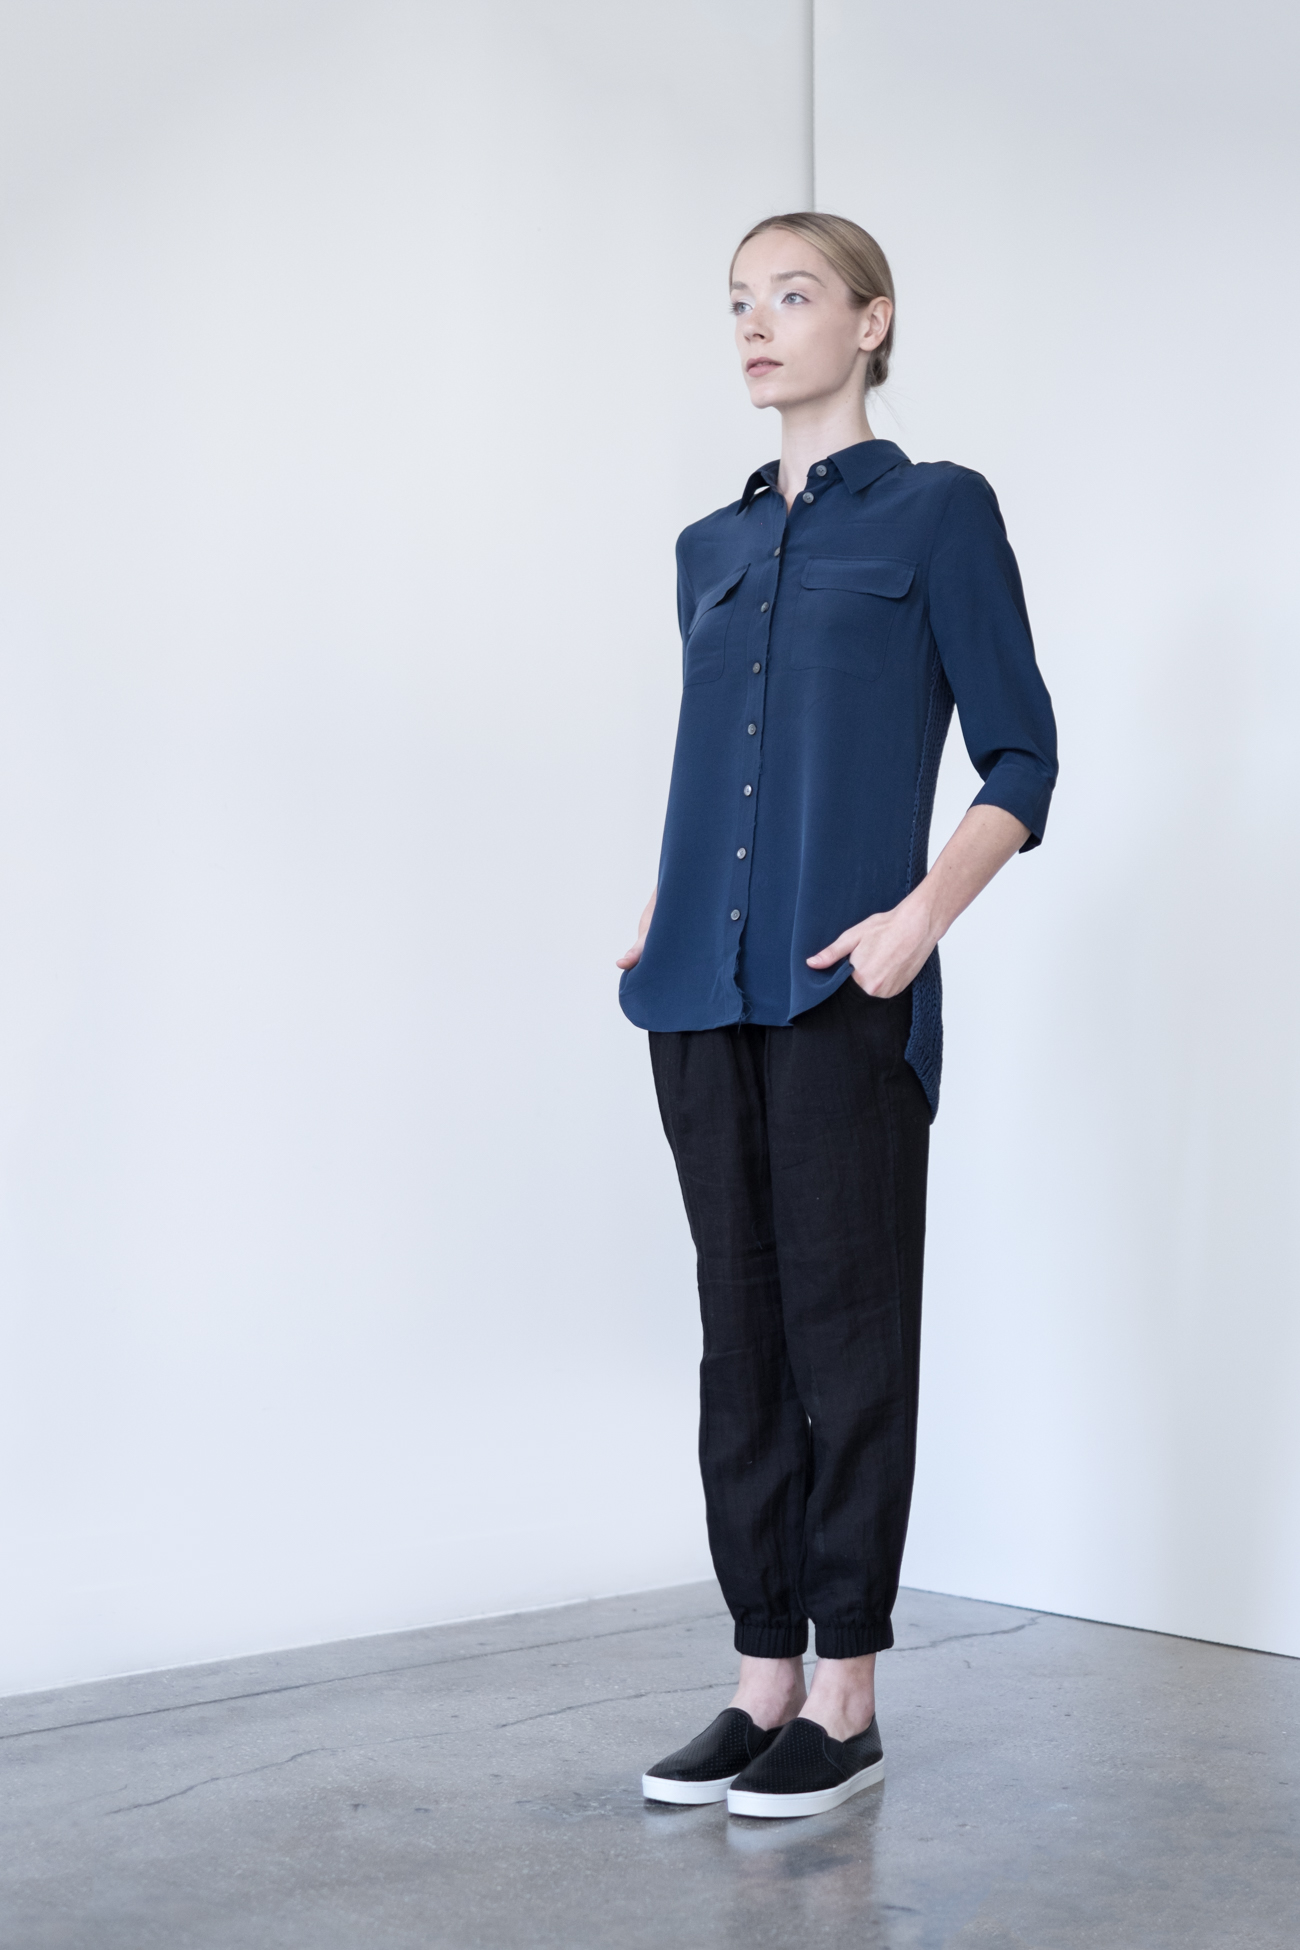 LOOK 46   TOP:   2268  / Navy   -     Jane 3/4 Sleeve silk blouse with sweater back insert. WS:  125   BOTTOM:   2290  / Noir  -   Jogger pants in 100% Cotton woven dbl. layer gauze.